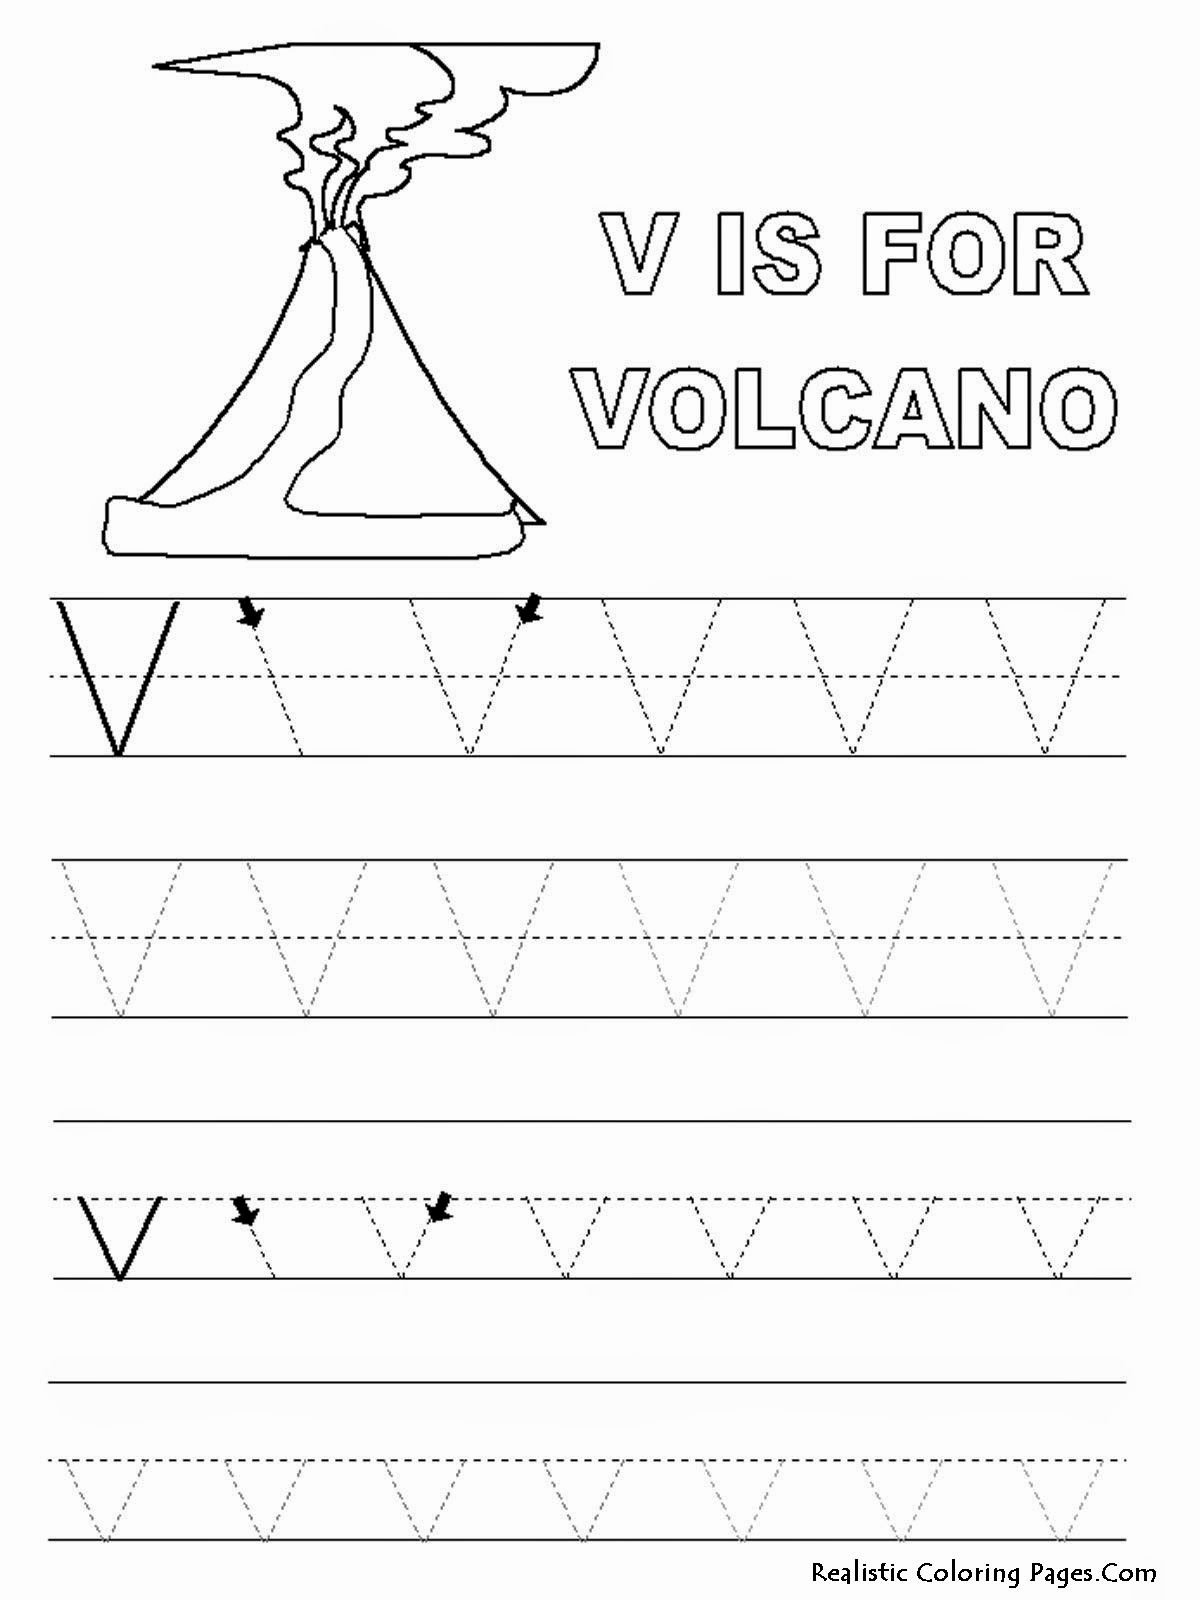 Volcano Worksheets for Preschoolers Fresh Alphabet Tracer Pages V Volcano Jpeg Image 1200 — 1600